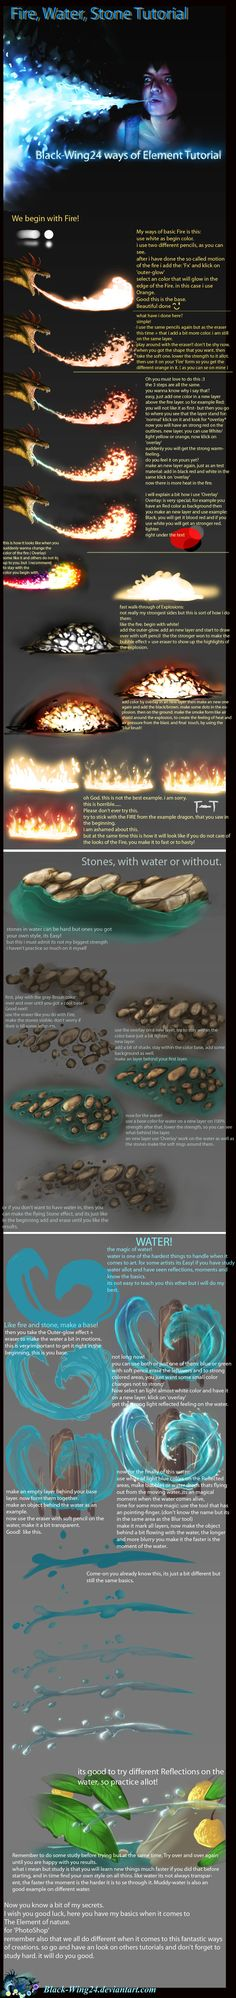 Fire, Stone and Water Tutorial by *Black-Wing24 [dA]